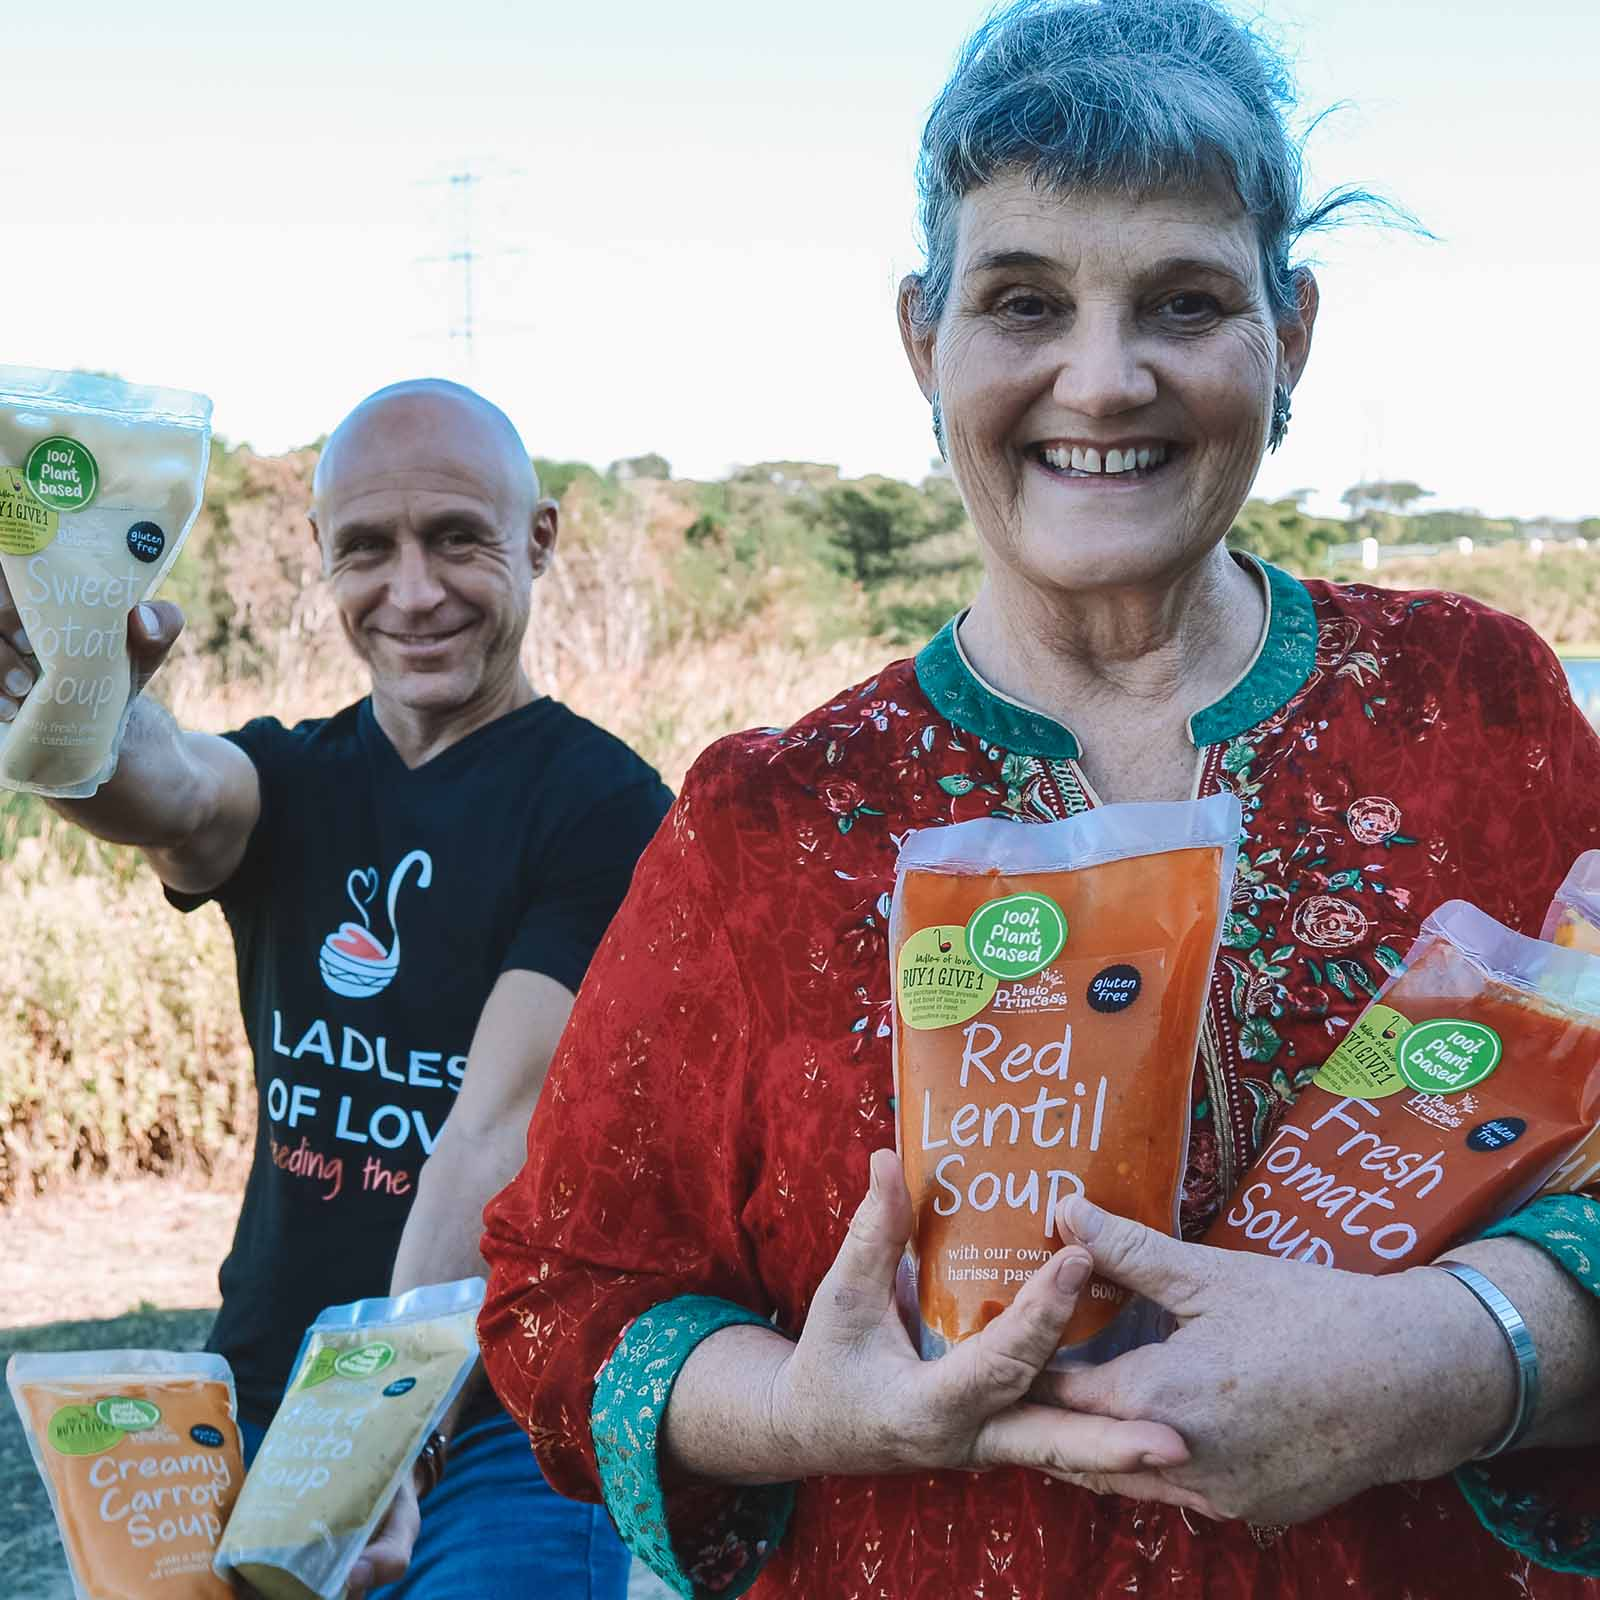 image of the ladles of love founder danny diliberto with pesto princess foods founder Kathleen Quillinan together showing the kindness clubs benefits